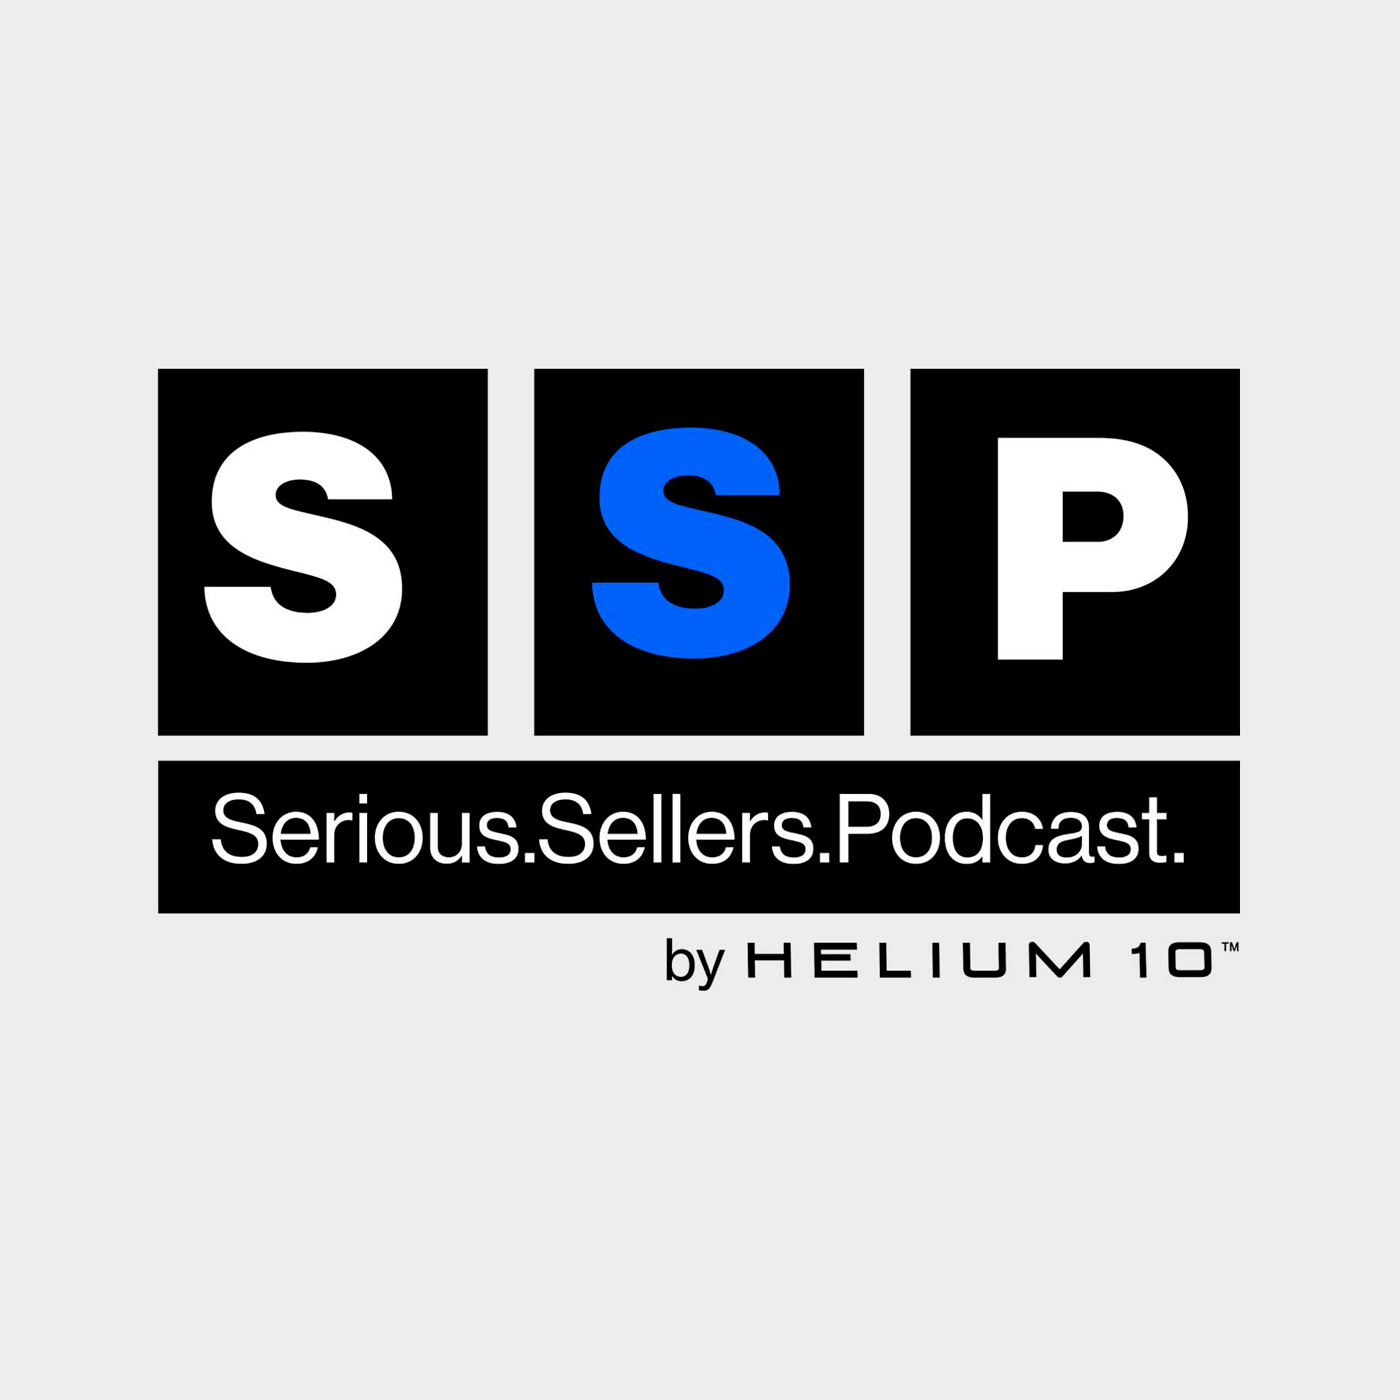 Serious-Seller-Podcast2